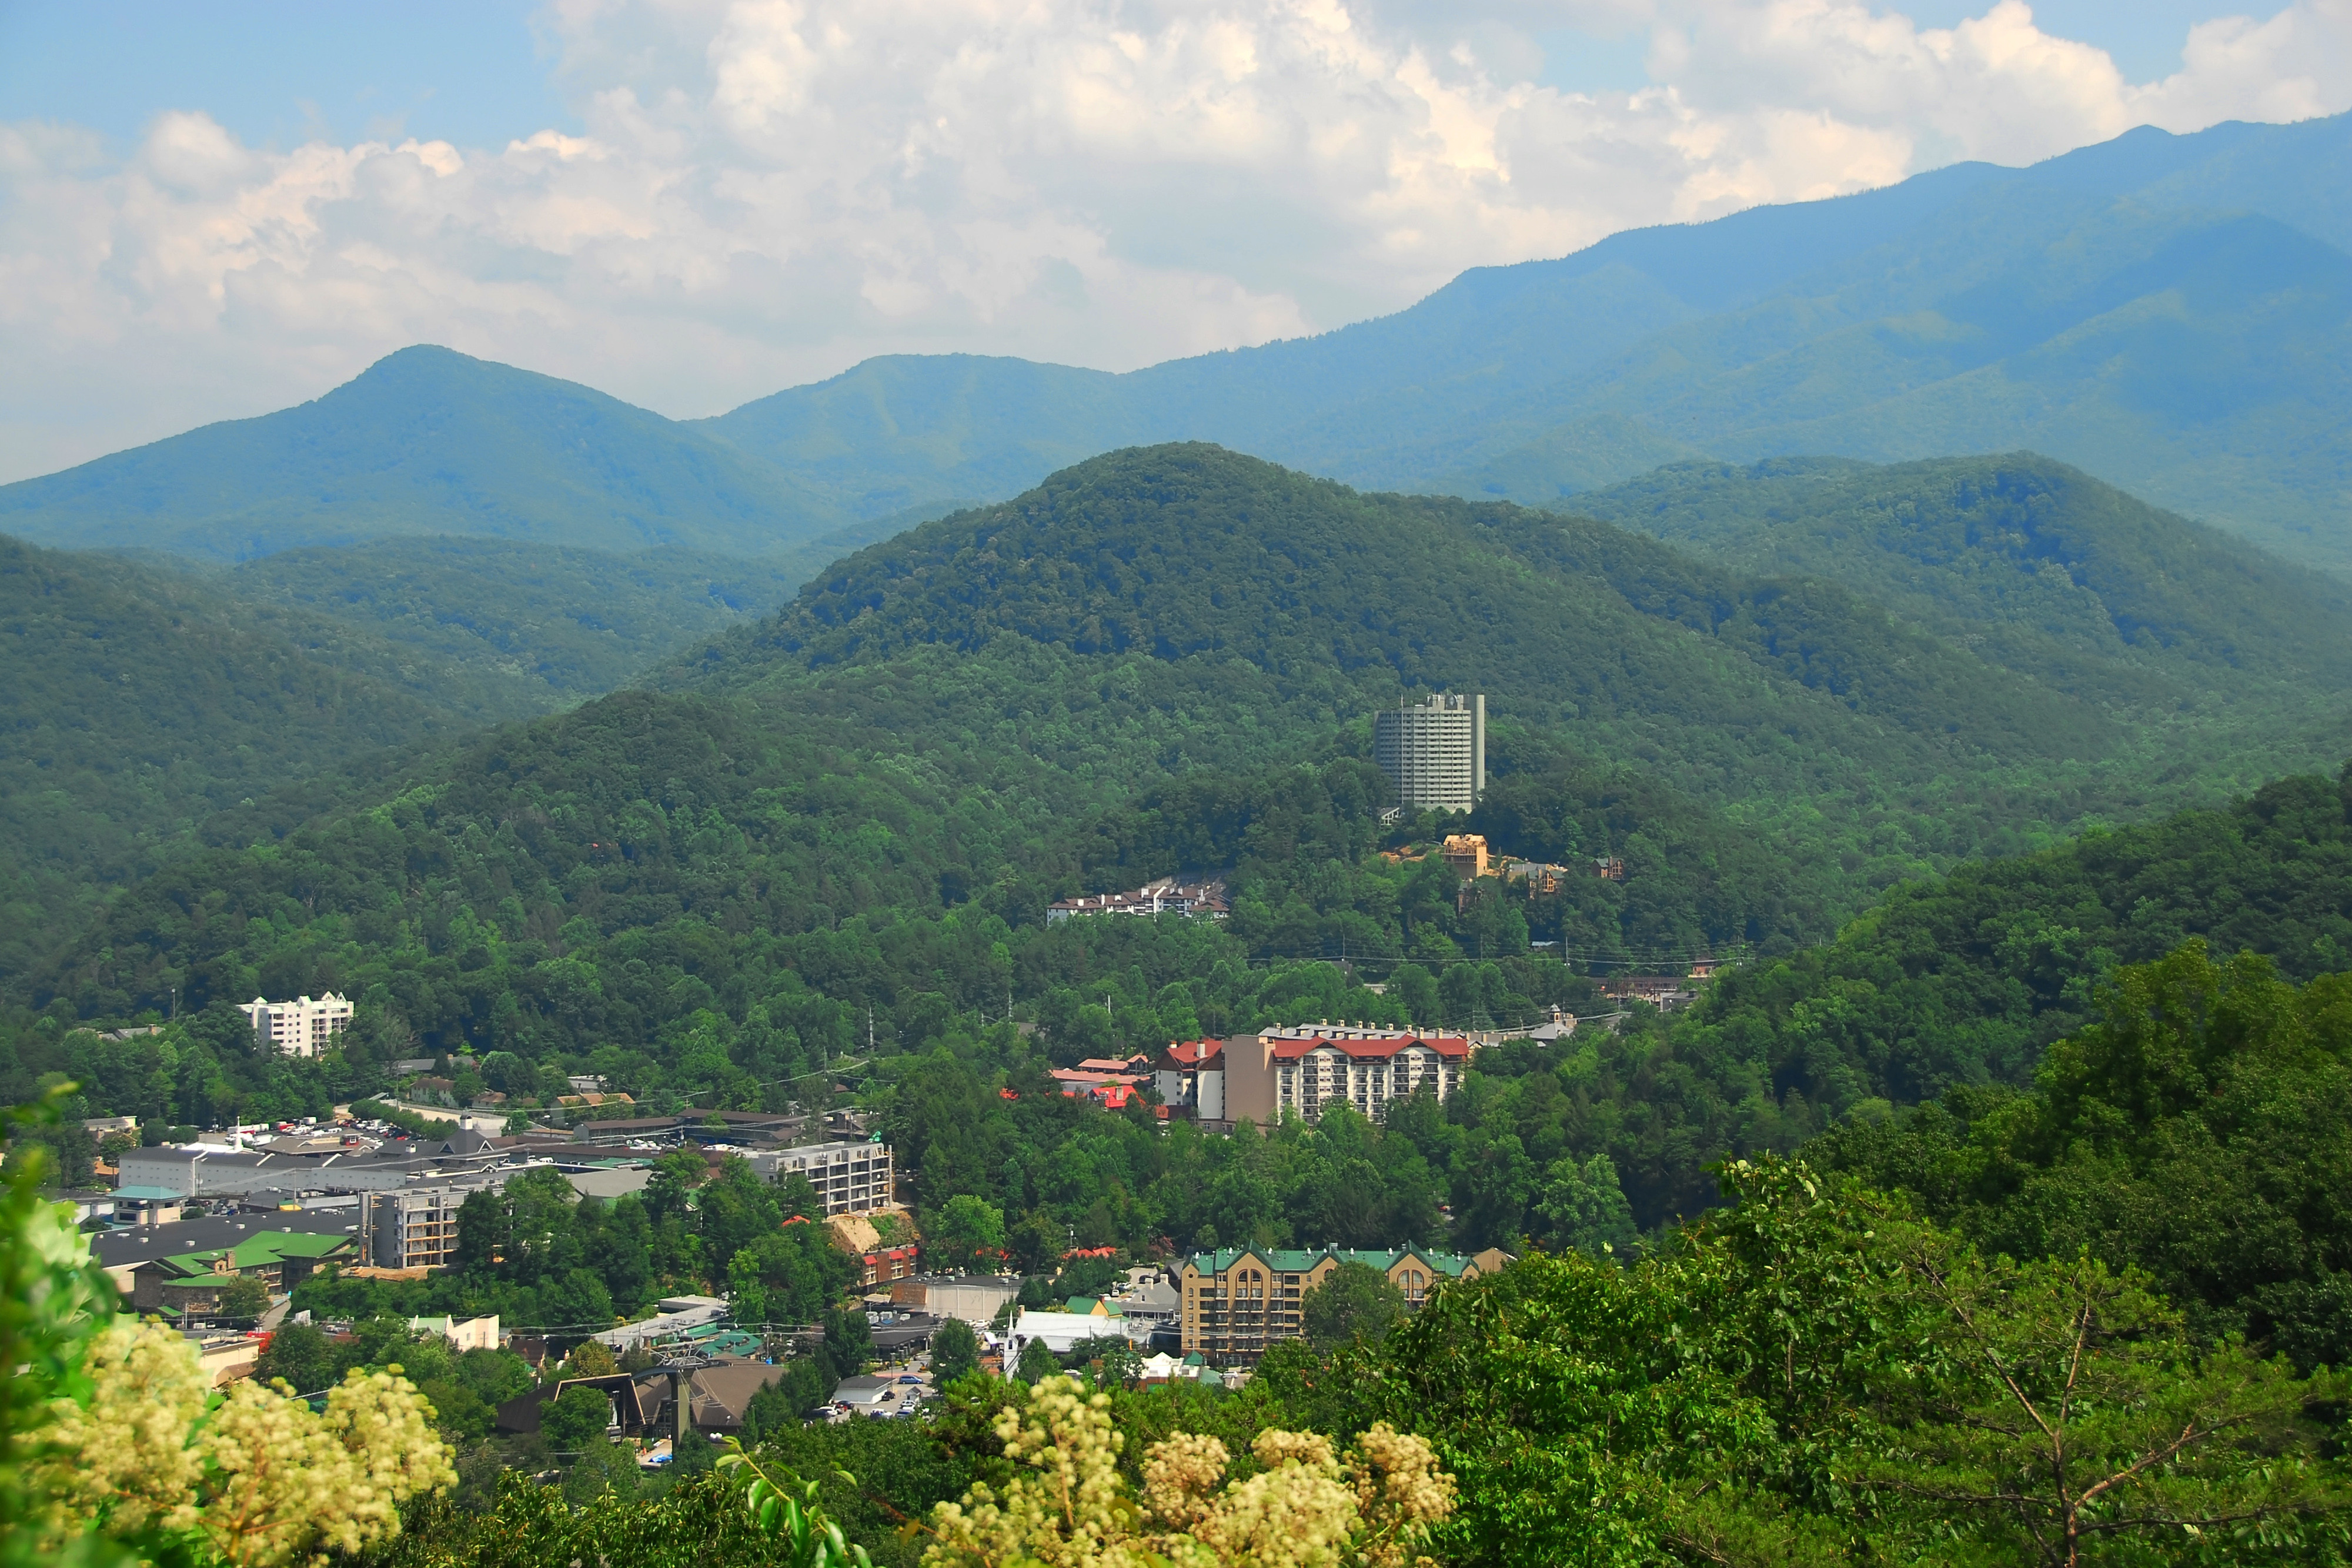 Discover great Smoky Mountain family vacation packages in Gatlinburg Tennessee with a 4-day/3-night stay at Westgate River Terrace Resort in downtown Gatlinburg close to the heart of the Smoky Mountains.  Enjoy spacious, comfortable accommodations and receive $50 for dining with this top family vacation package!